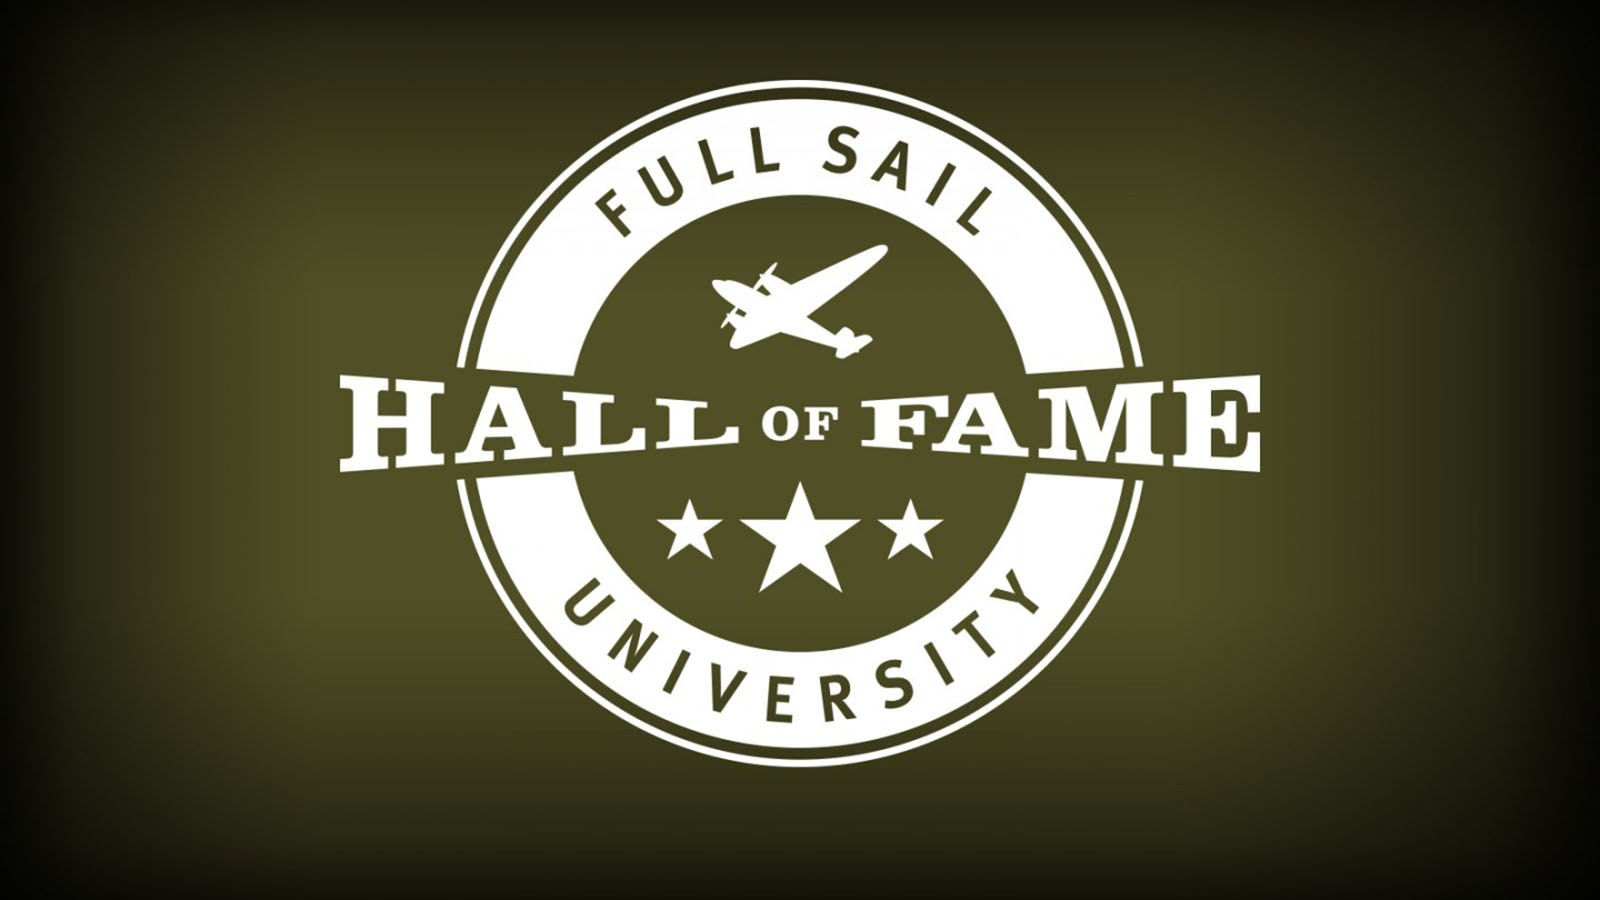 Full Sail University Announces 7th Annual Hall of Fame Induction Class - Hero image